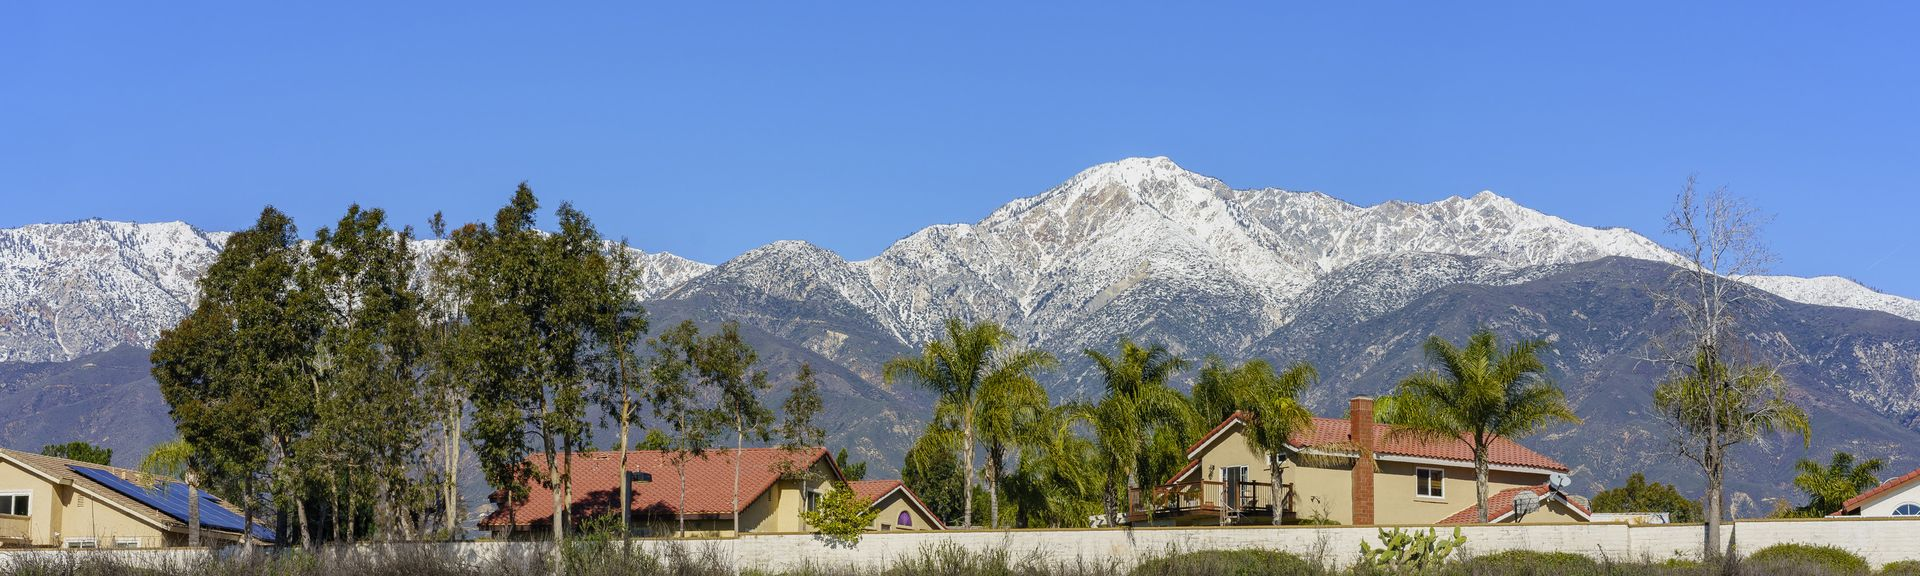 Rancho Cucamonga, Californien, USA